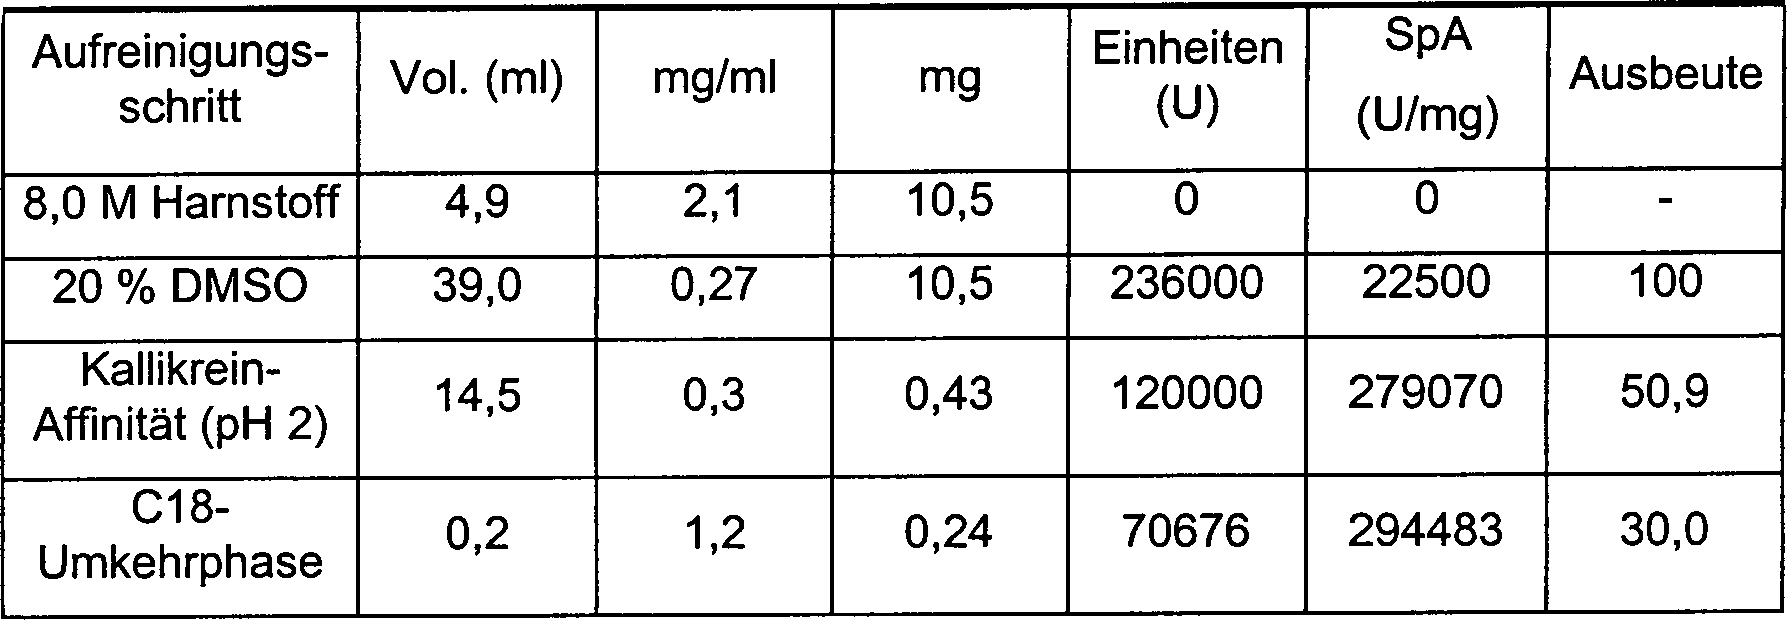 DE69912988T2 - Use of a serine protease inhibitor from the Kunitz ...